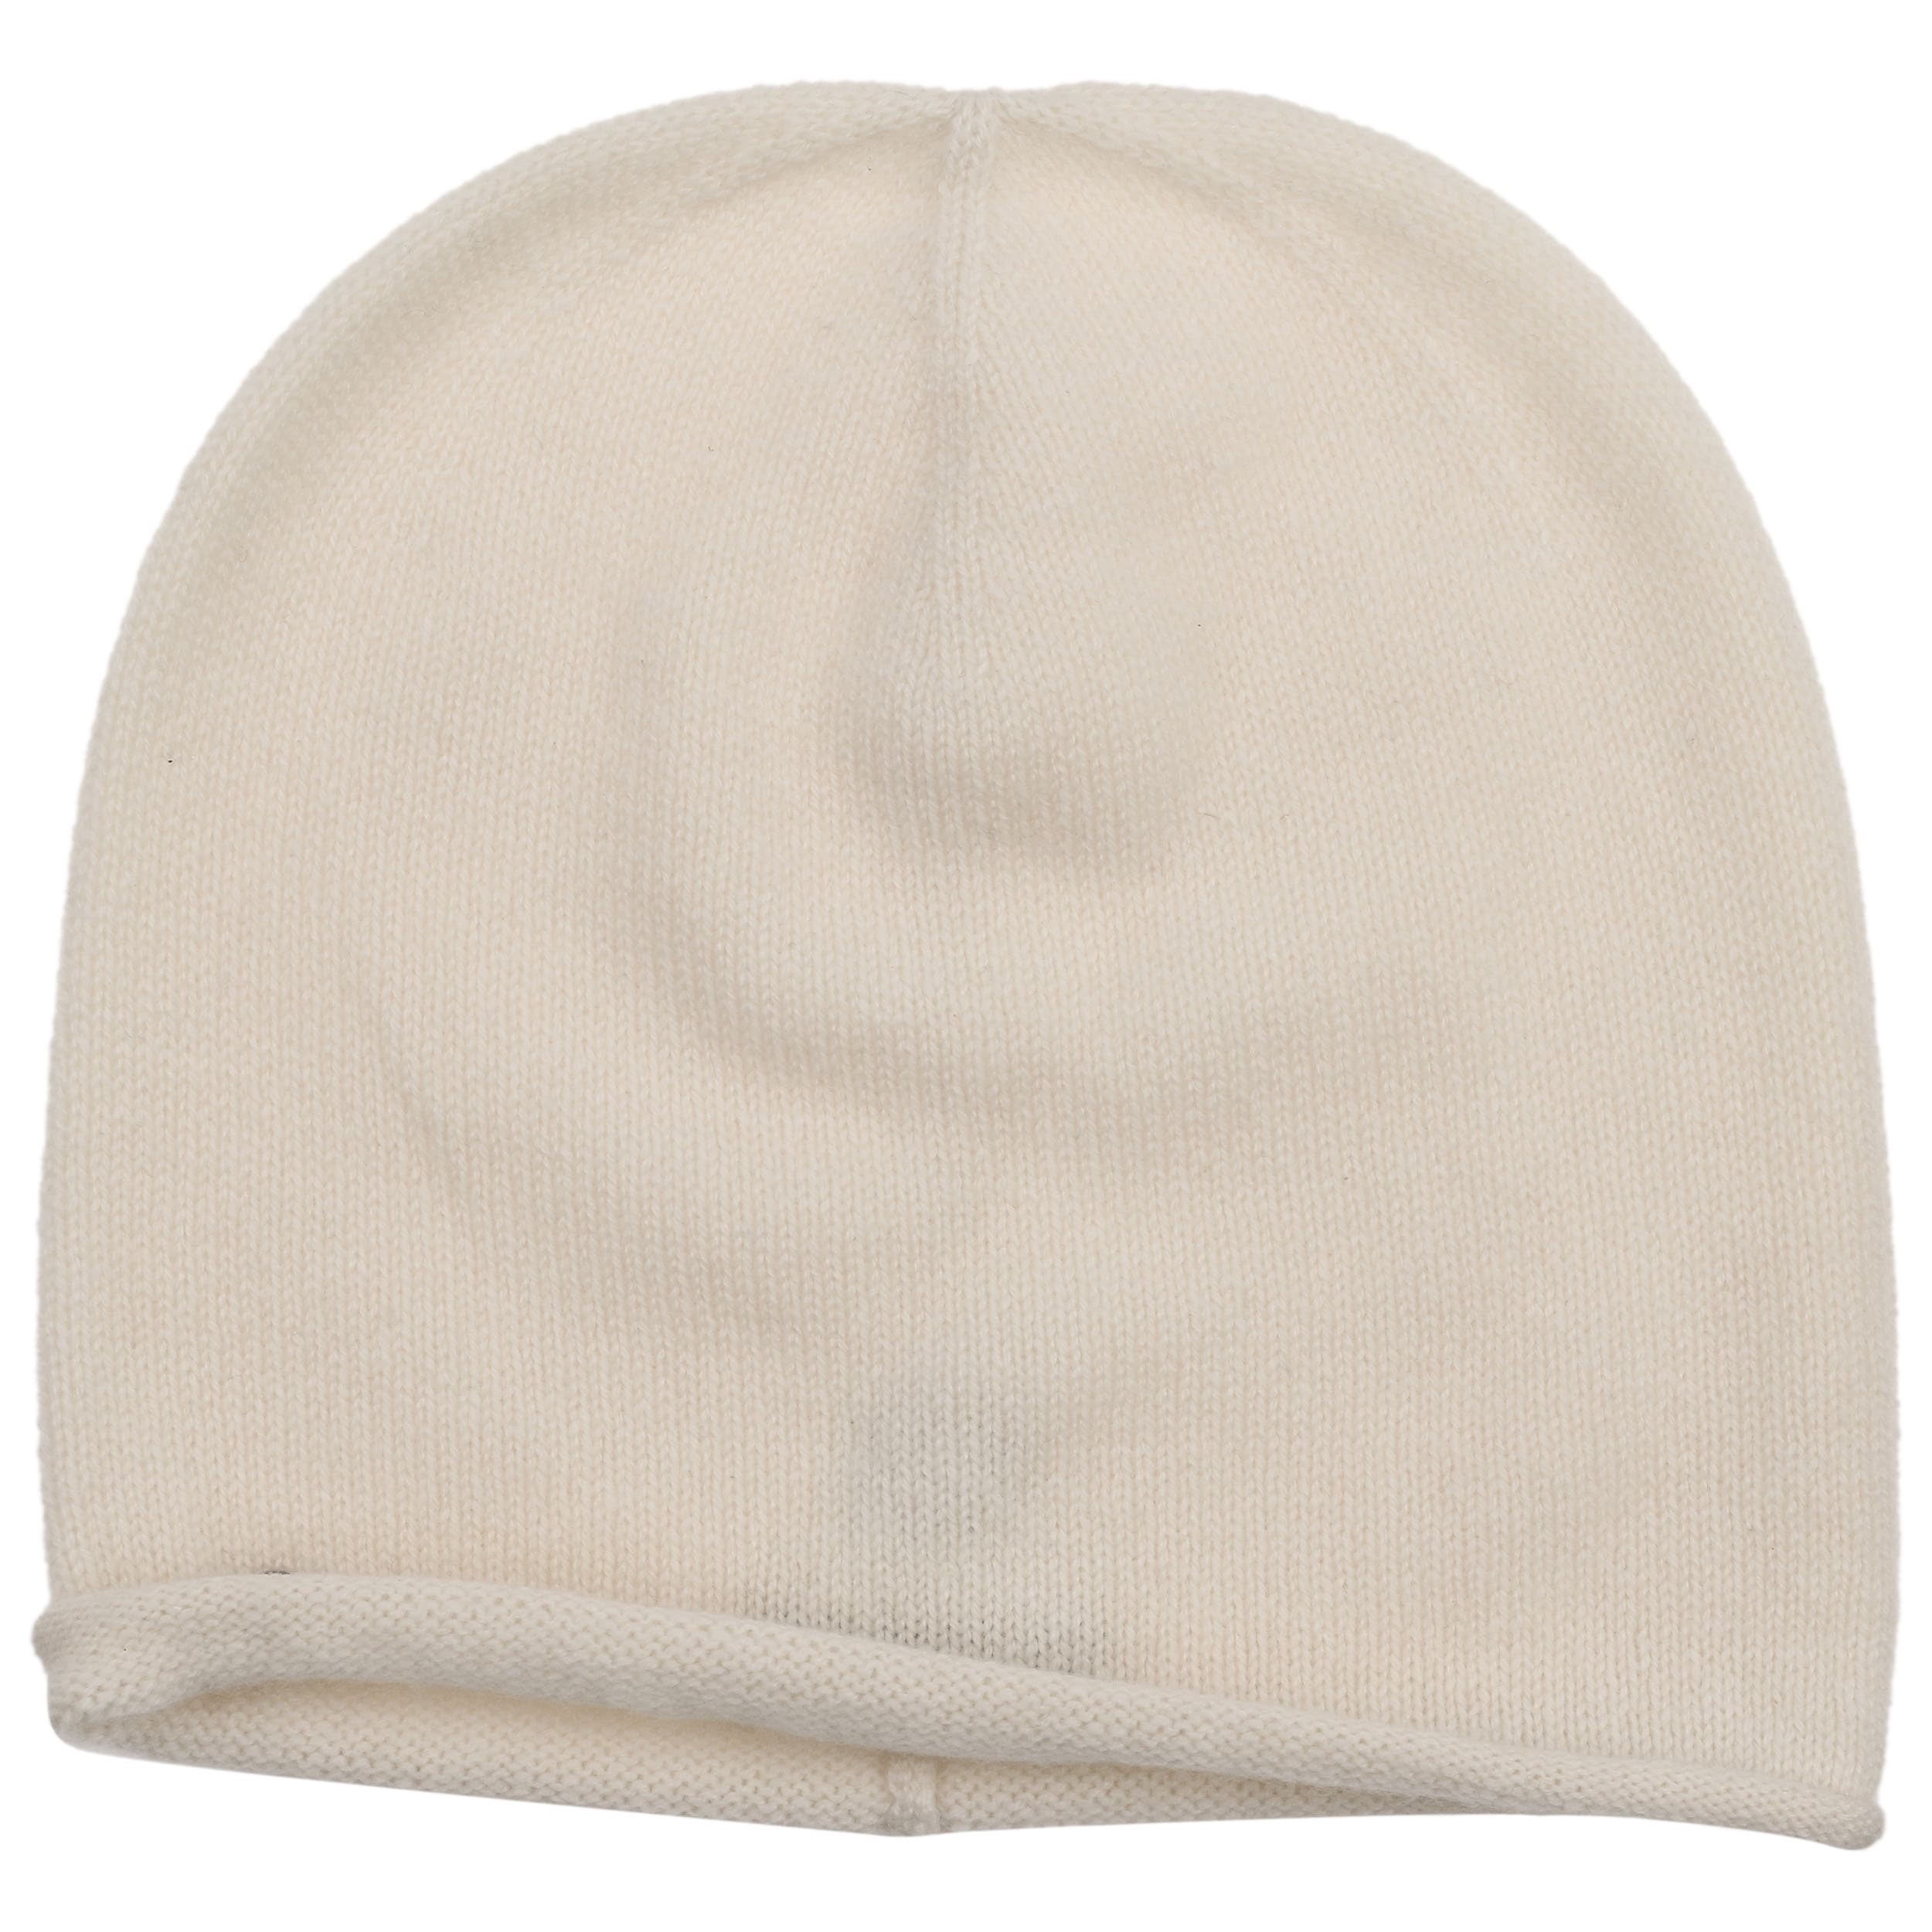 812b93dd97c ... Rolled Edge Cashmere Beanie by Seeberger - cream white 1 ...